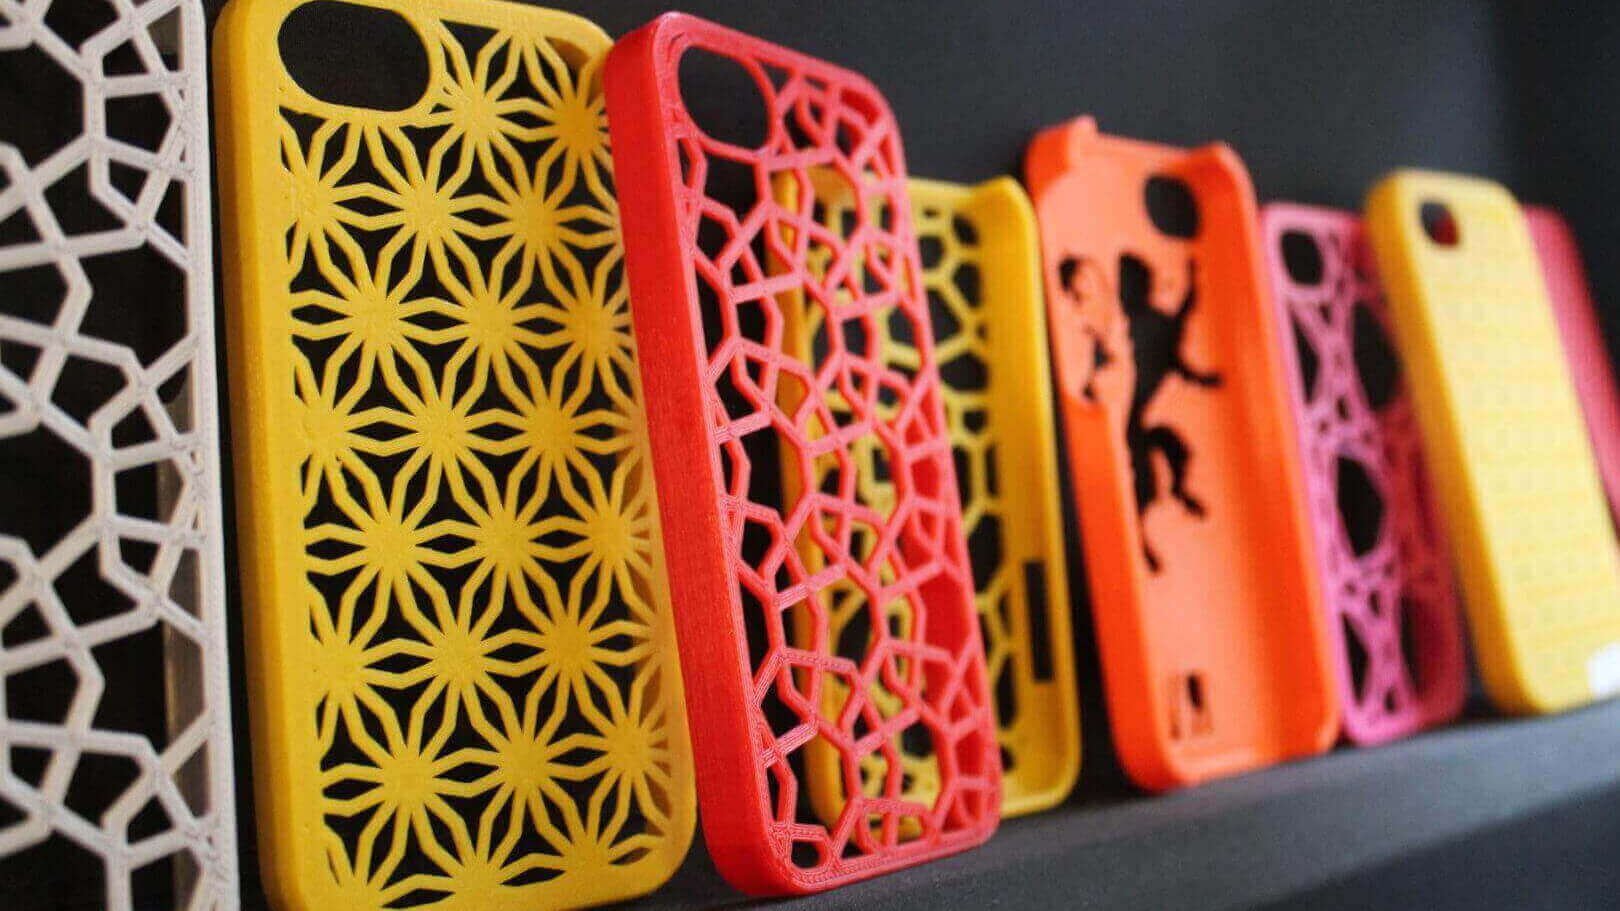 5 Best Sources for 3D Printed Phone Cases | All3DP